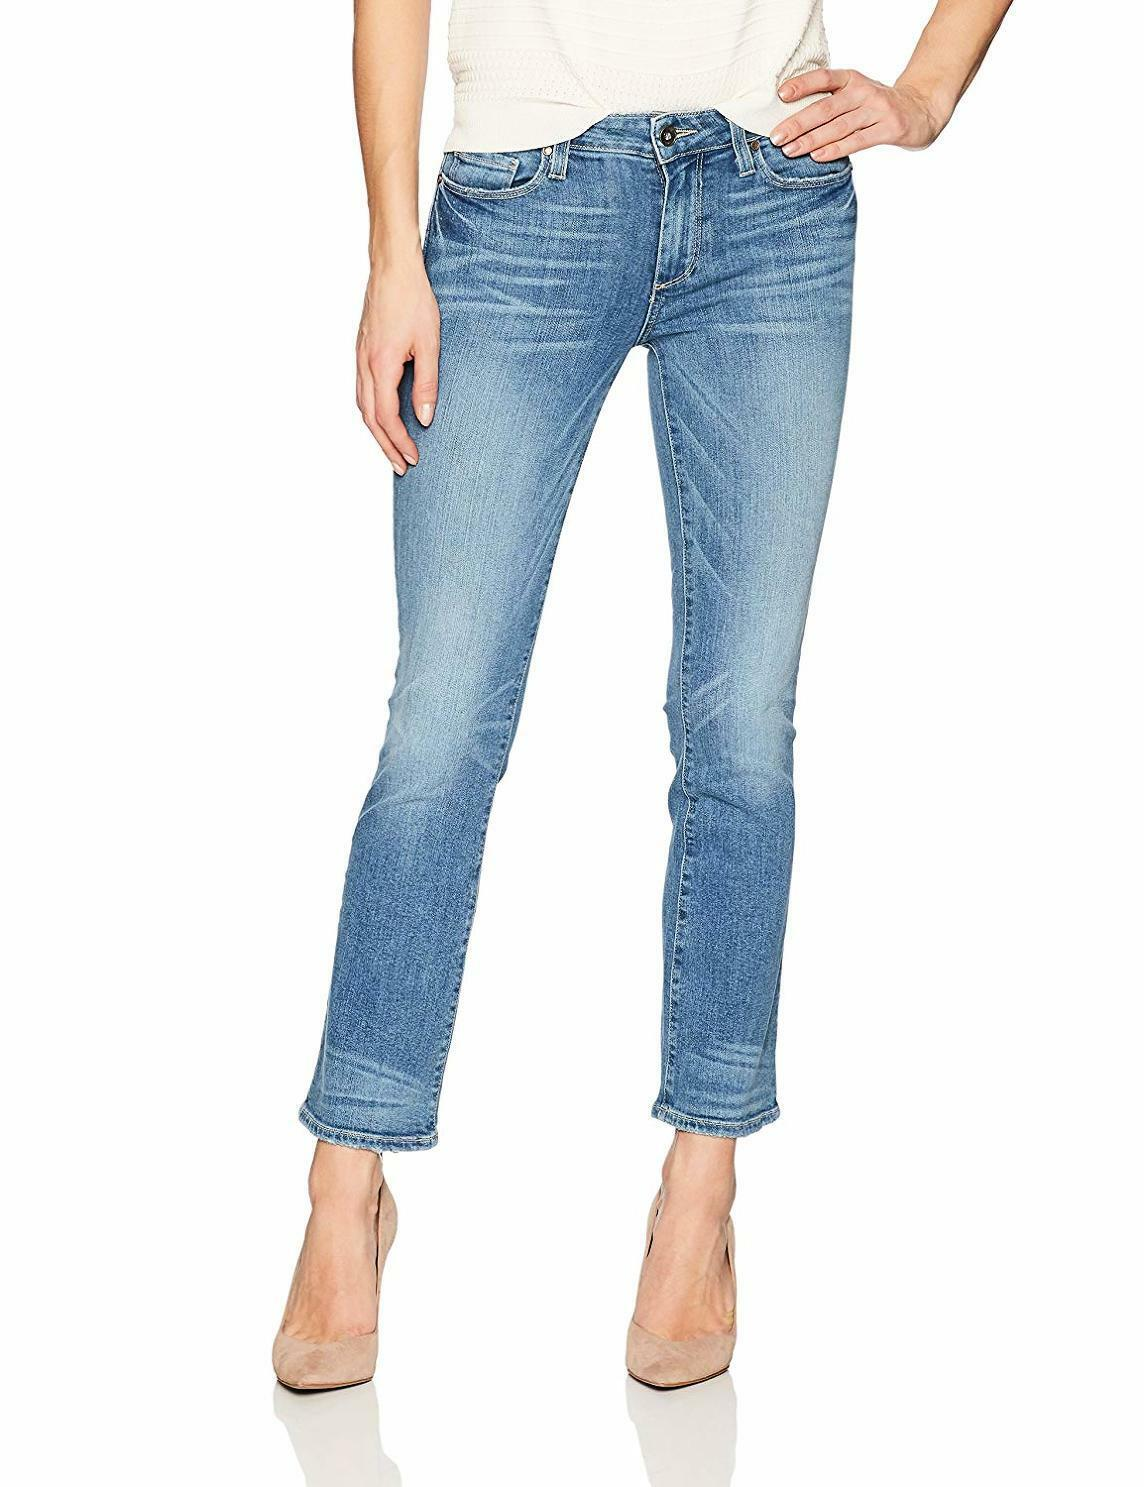 PAIGE Women's Jocelyn Jeans in Morgan - Choose SZ color